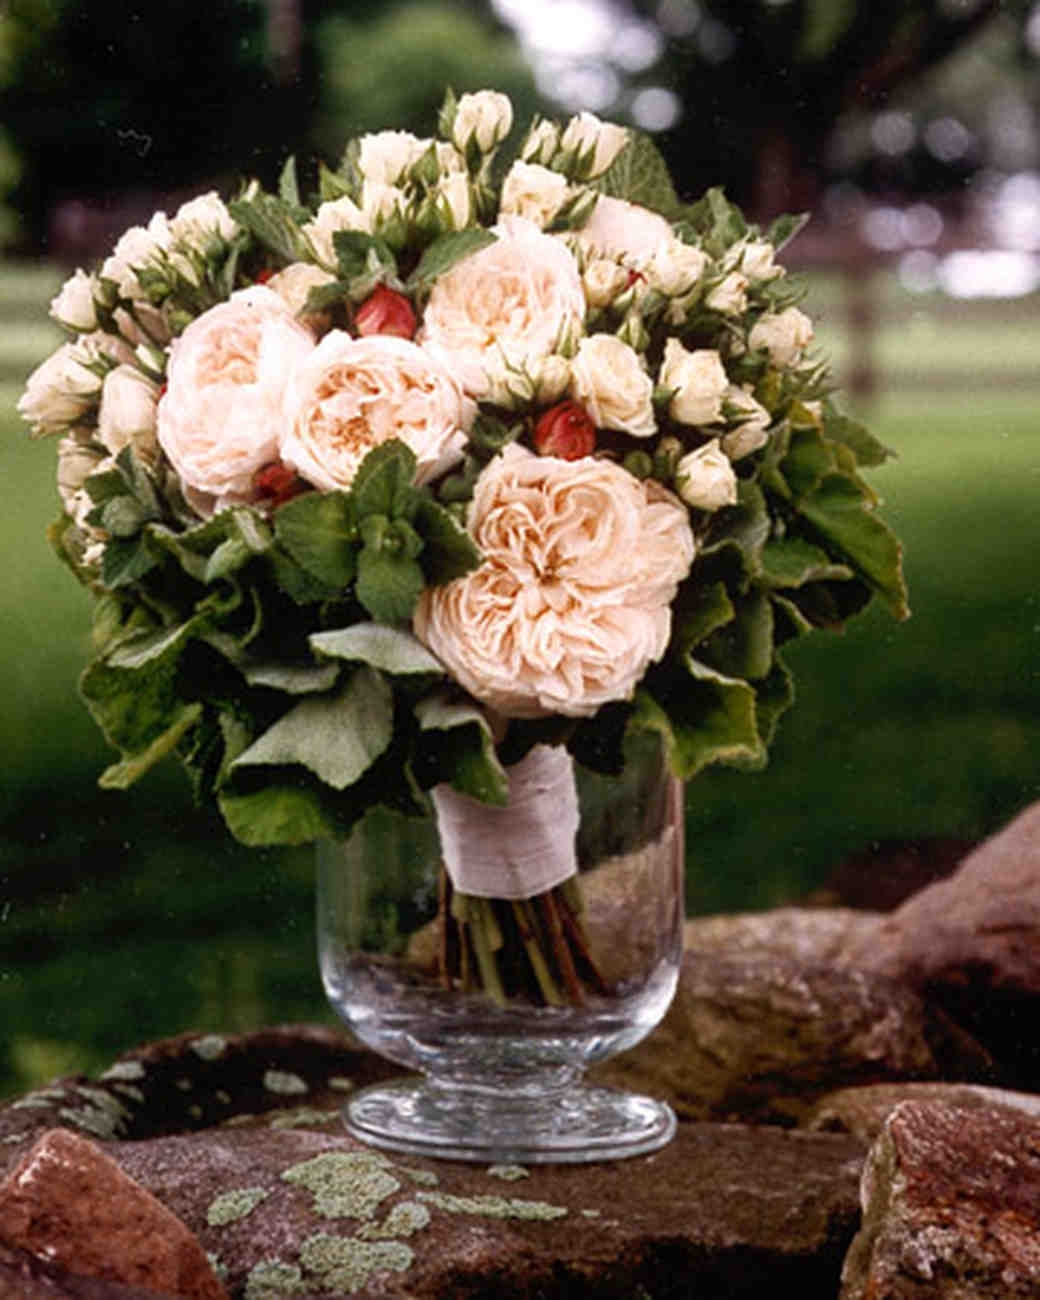 a99638_win03_bouquet2.jpg